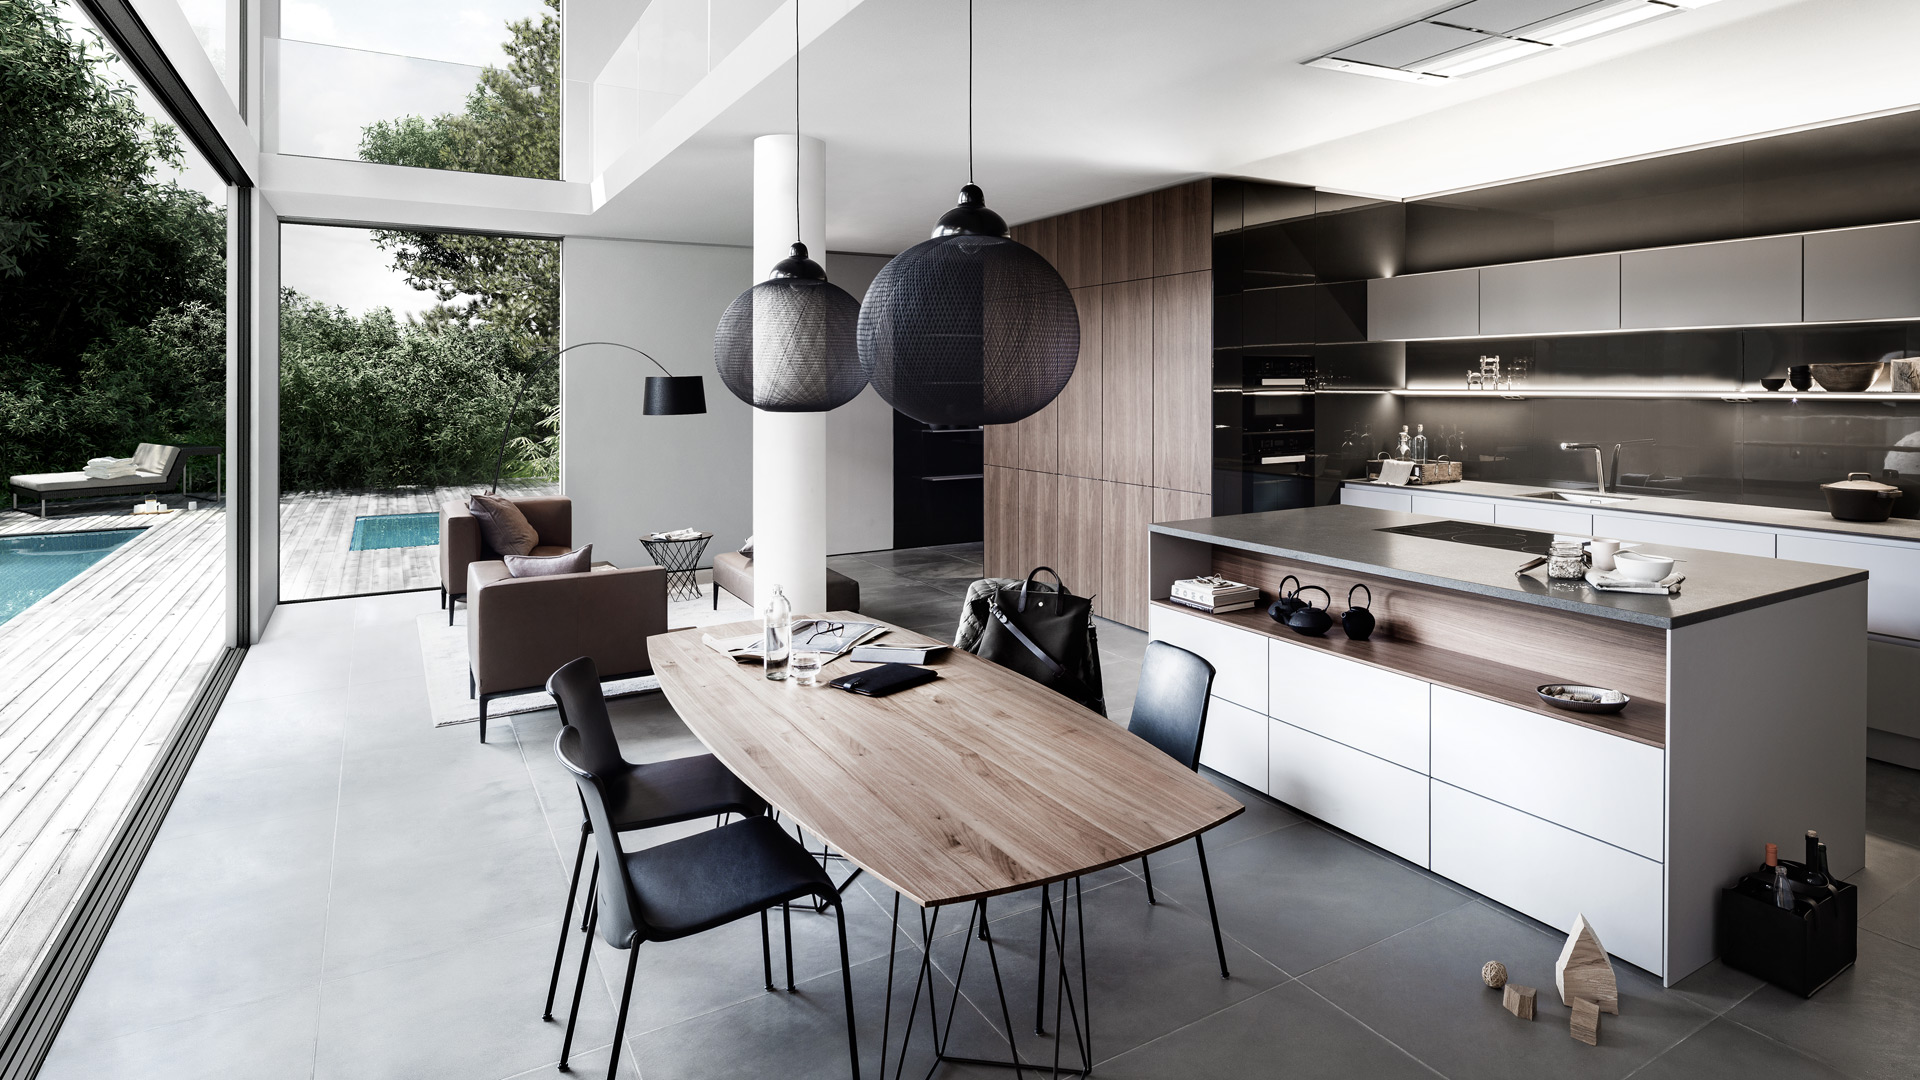 Siematic steven christopher design group - Distribucion de cocinas ...